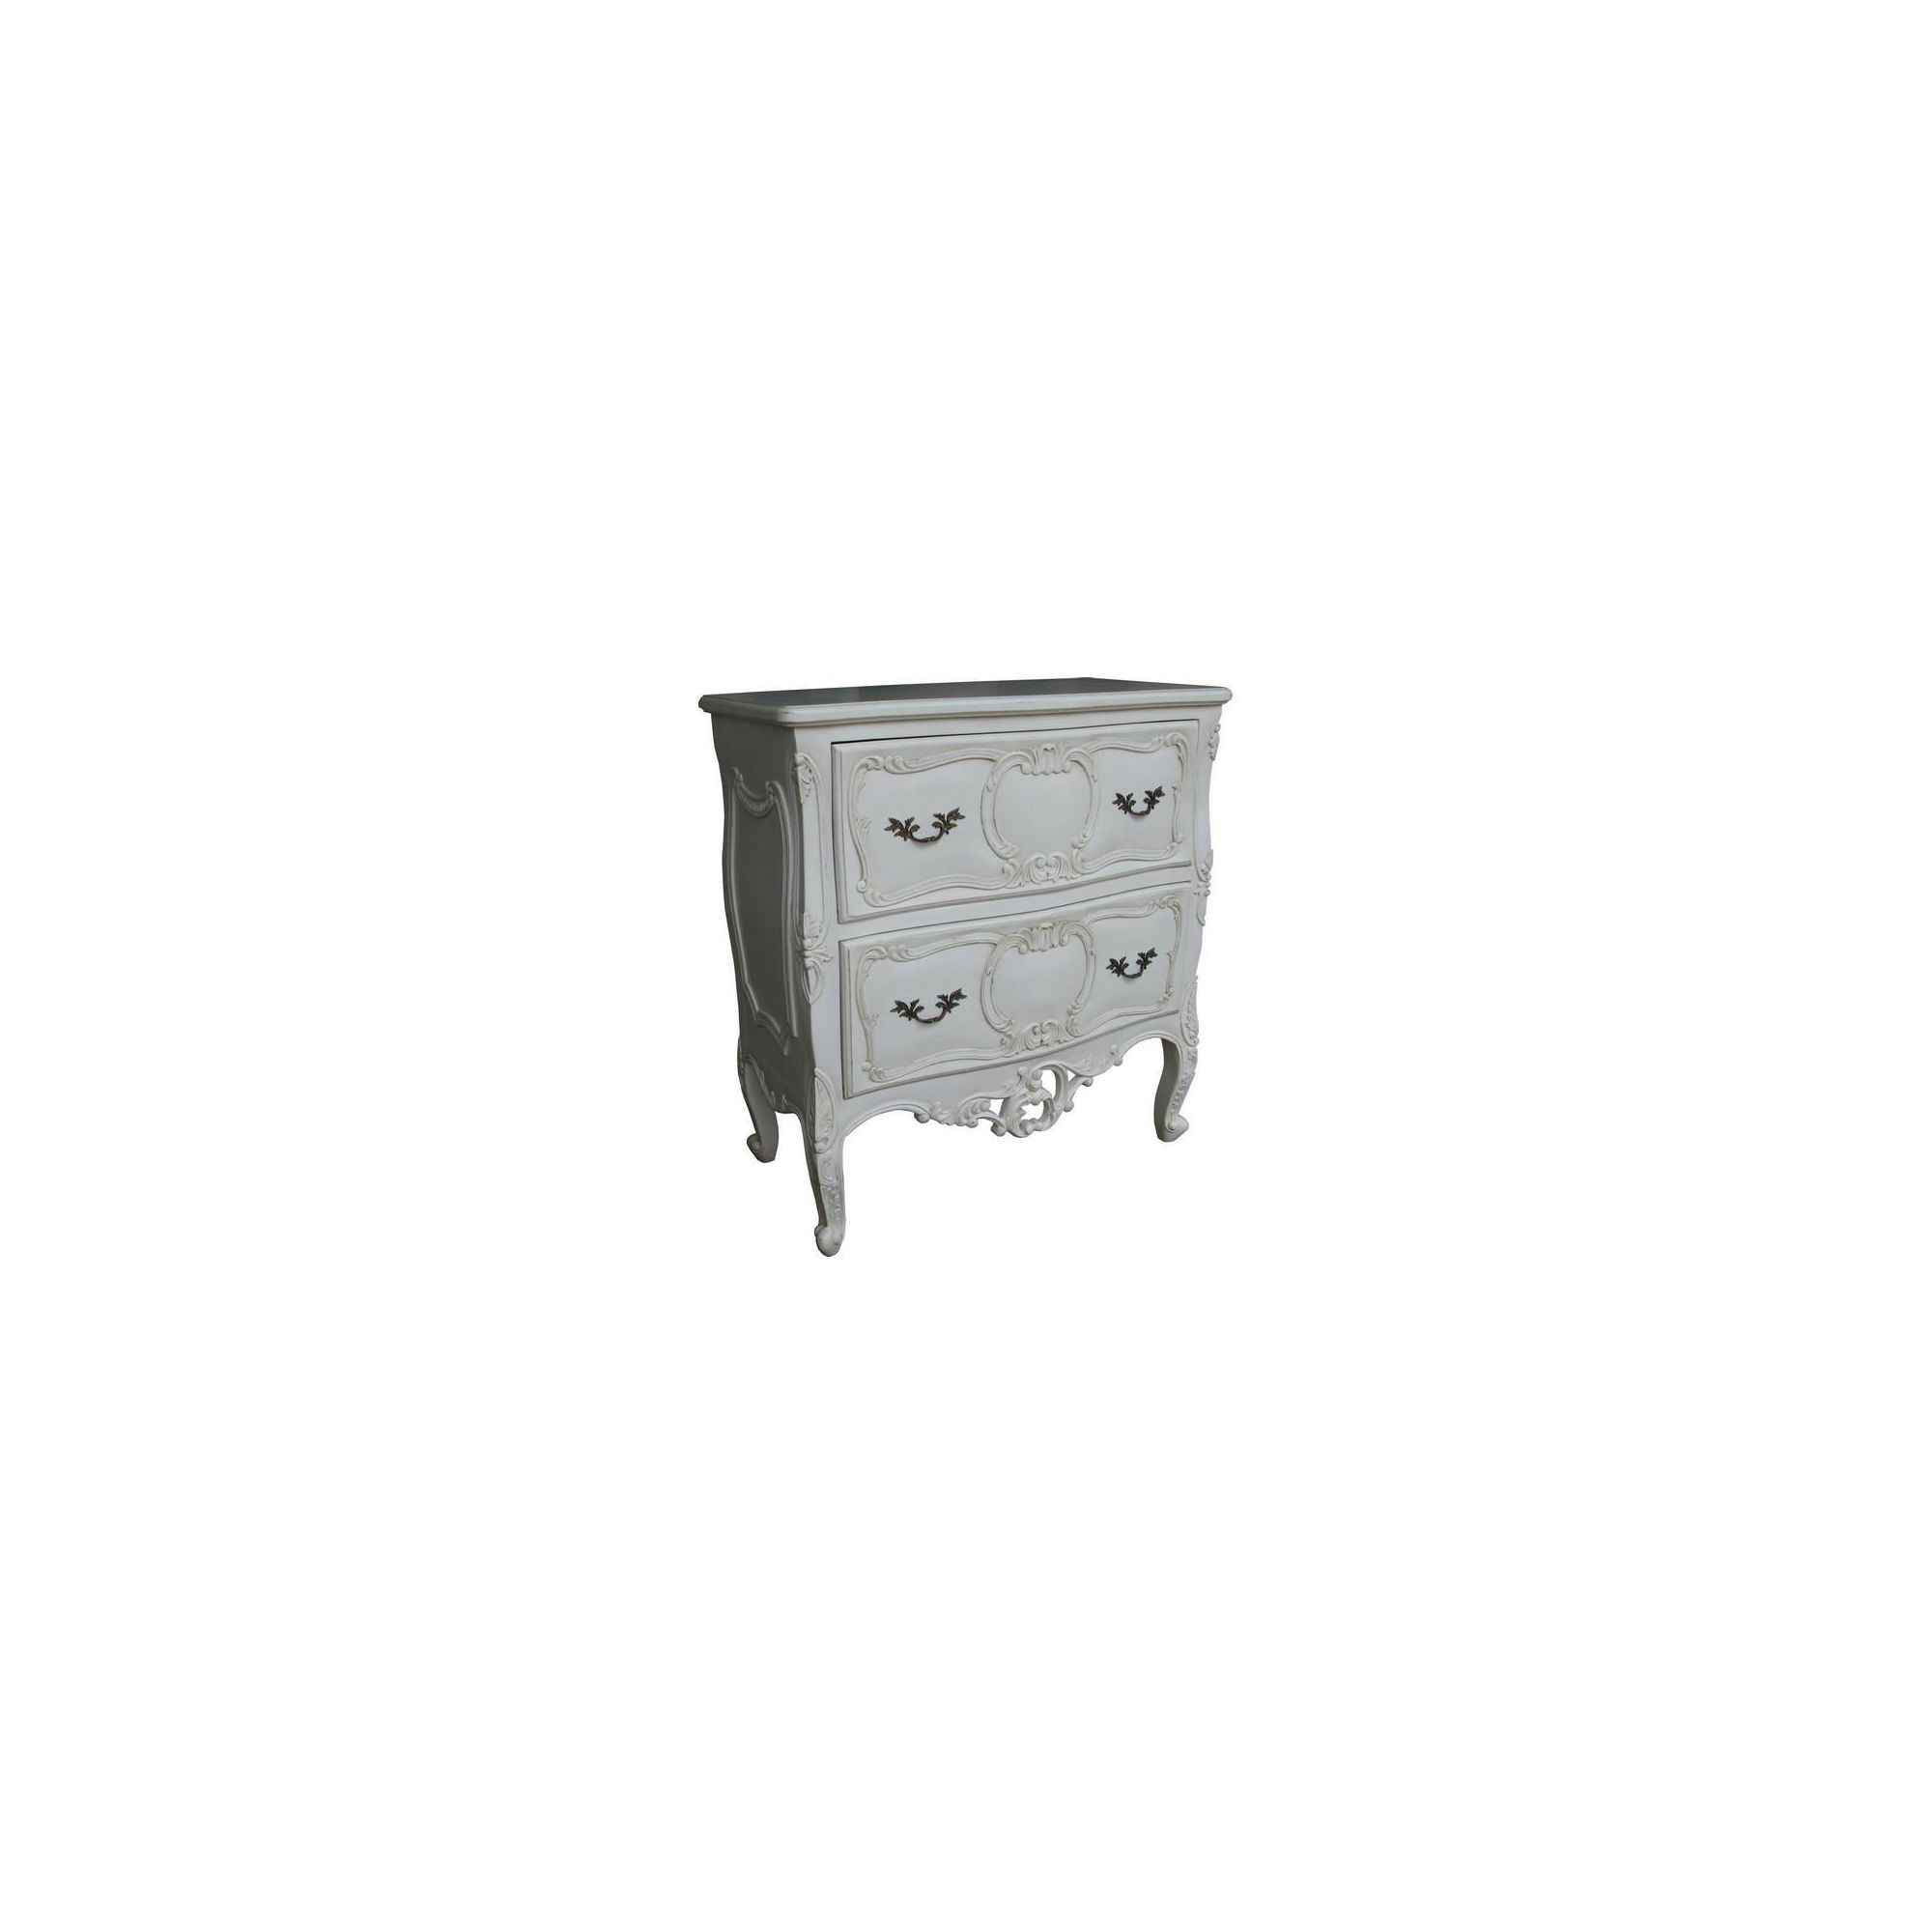 Lock stock and barrel Mahogany Rococo 2 Drawer Chest in Mahogany - Antique White at Tesco Direct